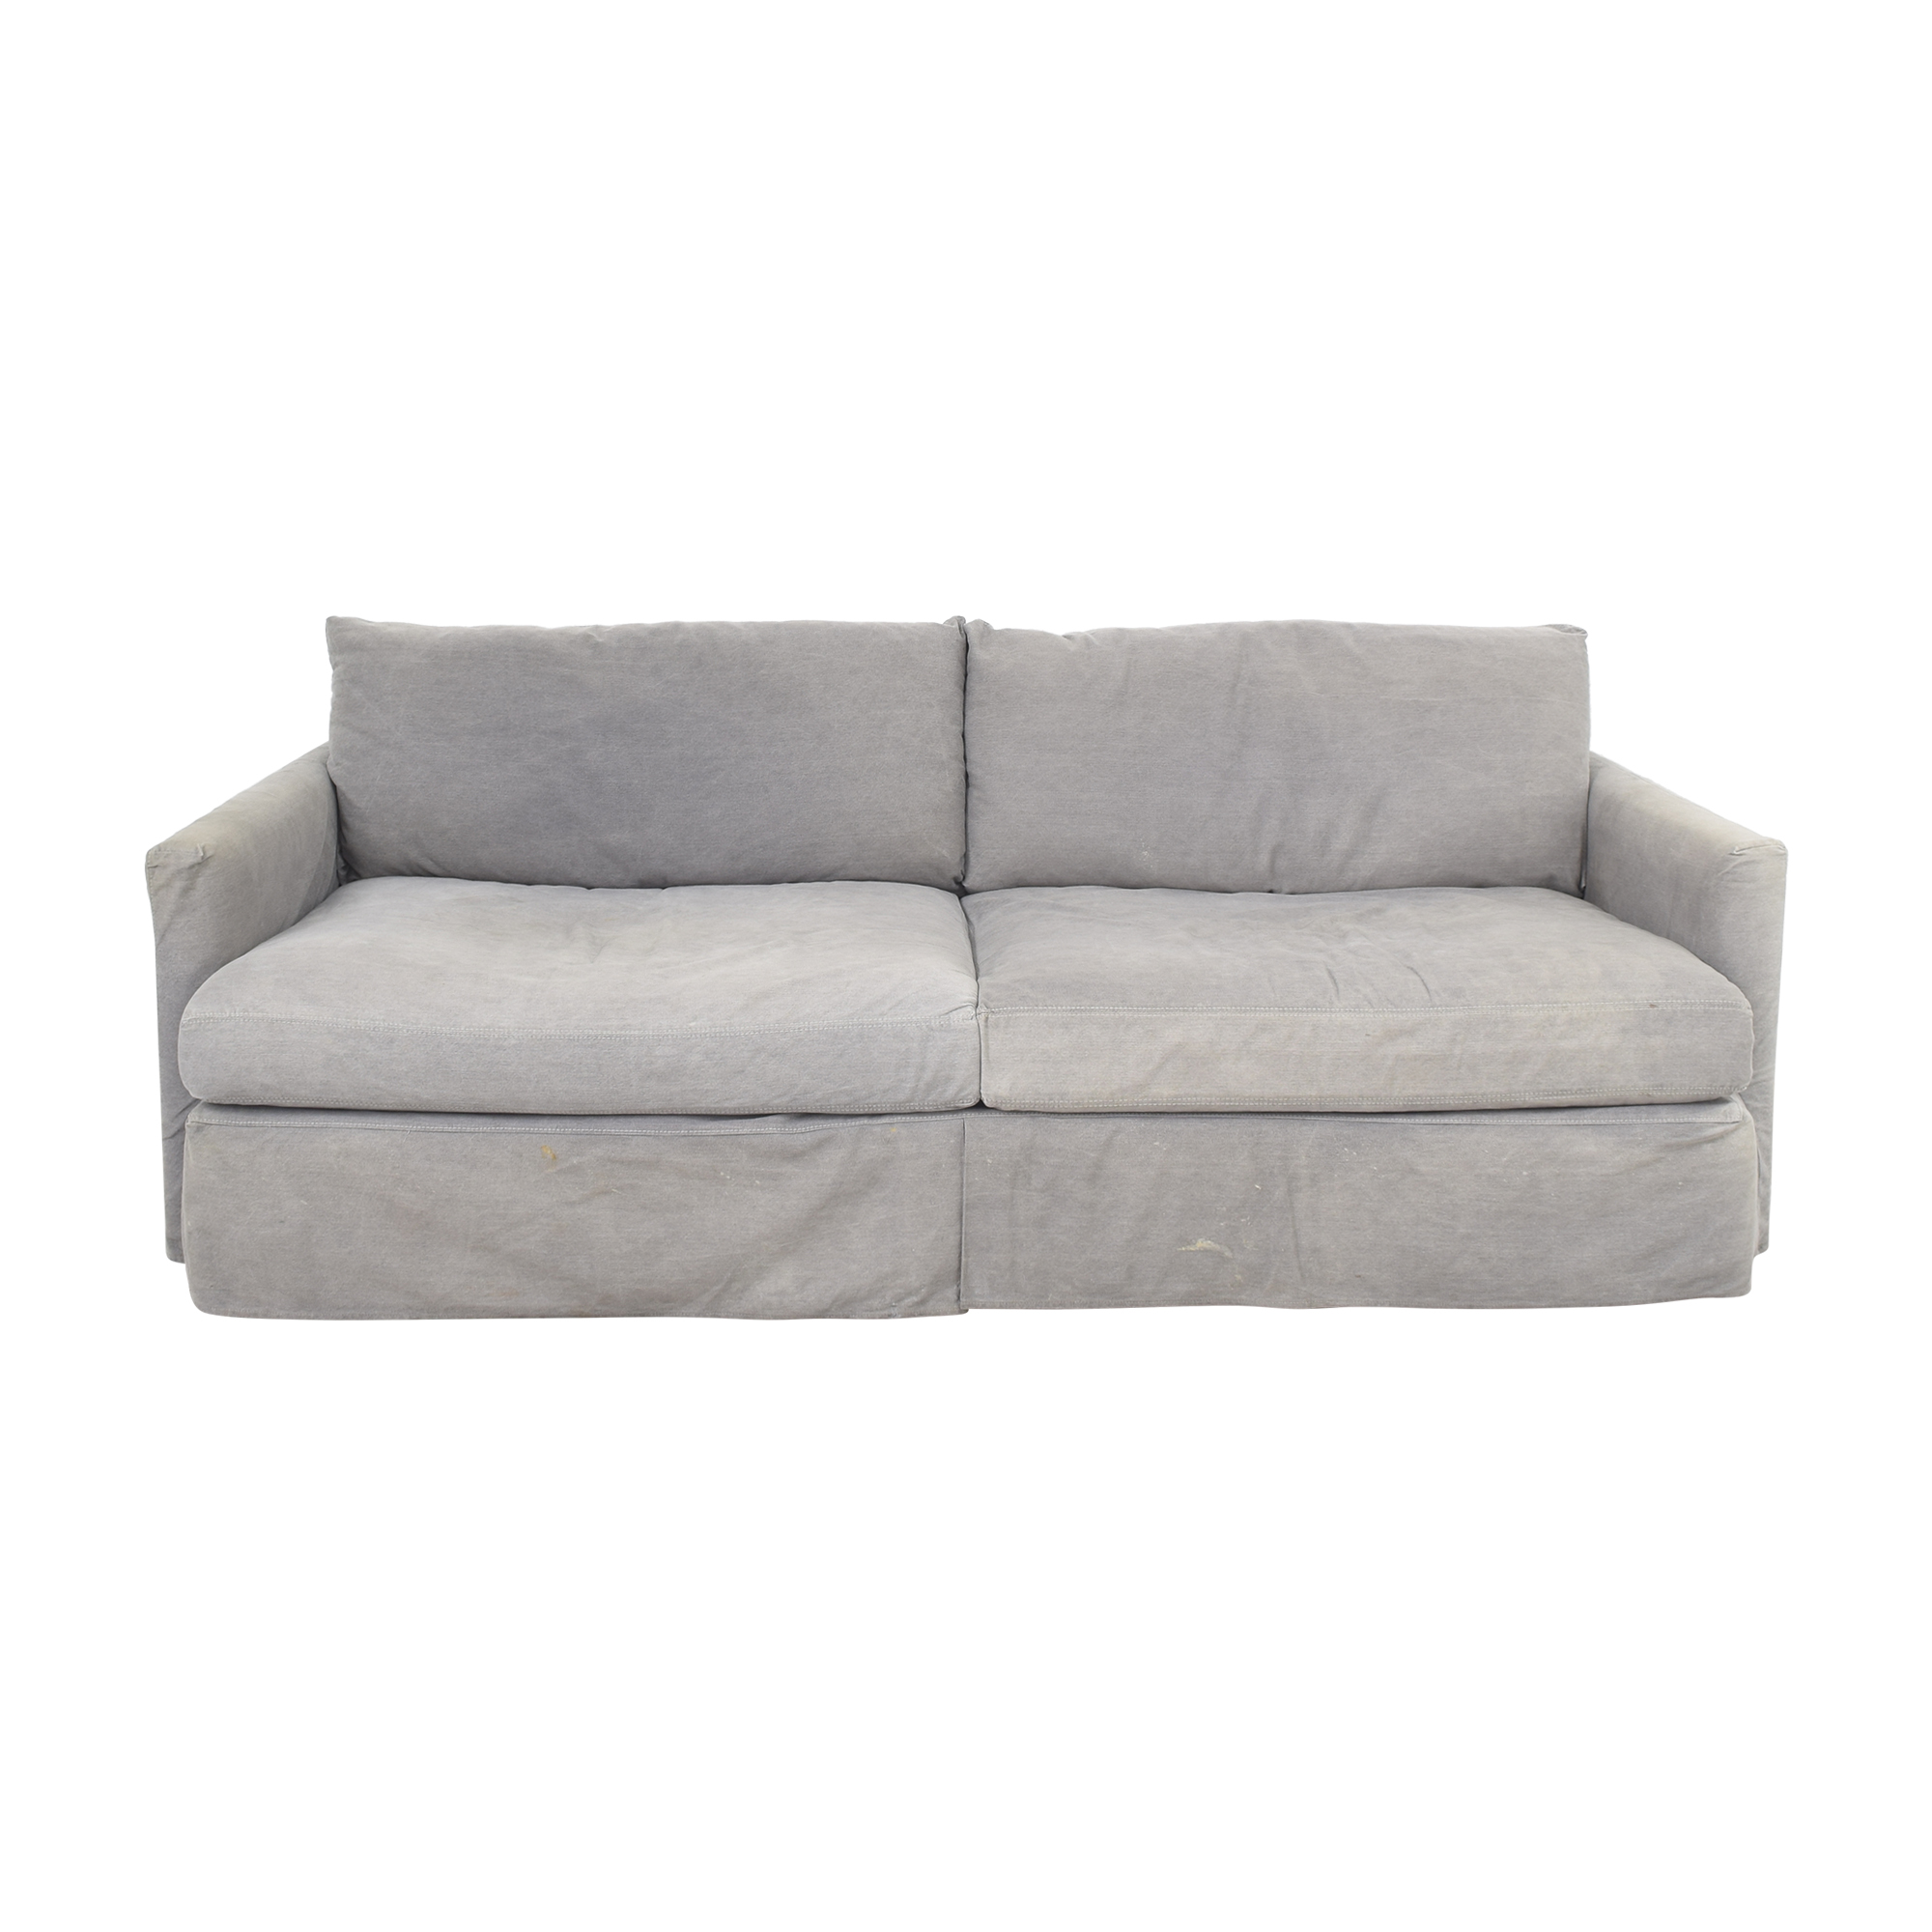 Crate & Barrel Crate & Barrel Lounge II Sofa with Two Ottomans on Casters gray